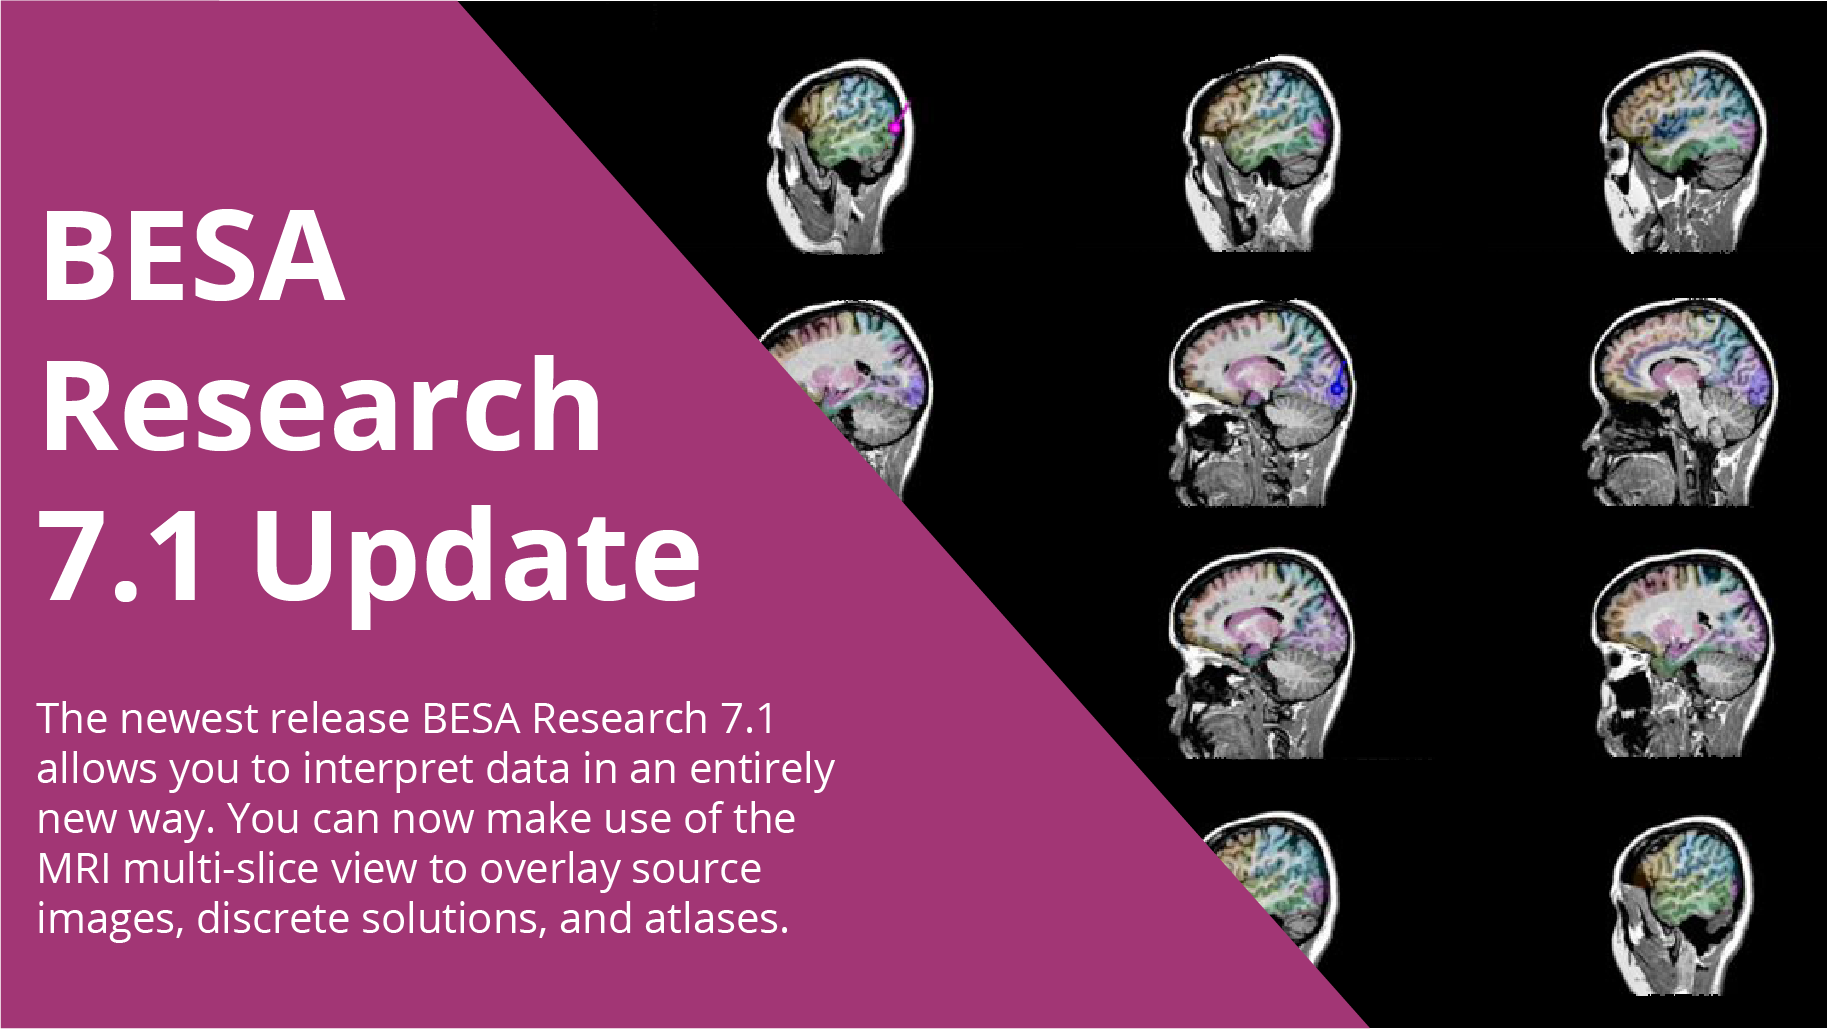 BESA Research 7.1 - Update